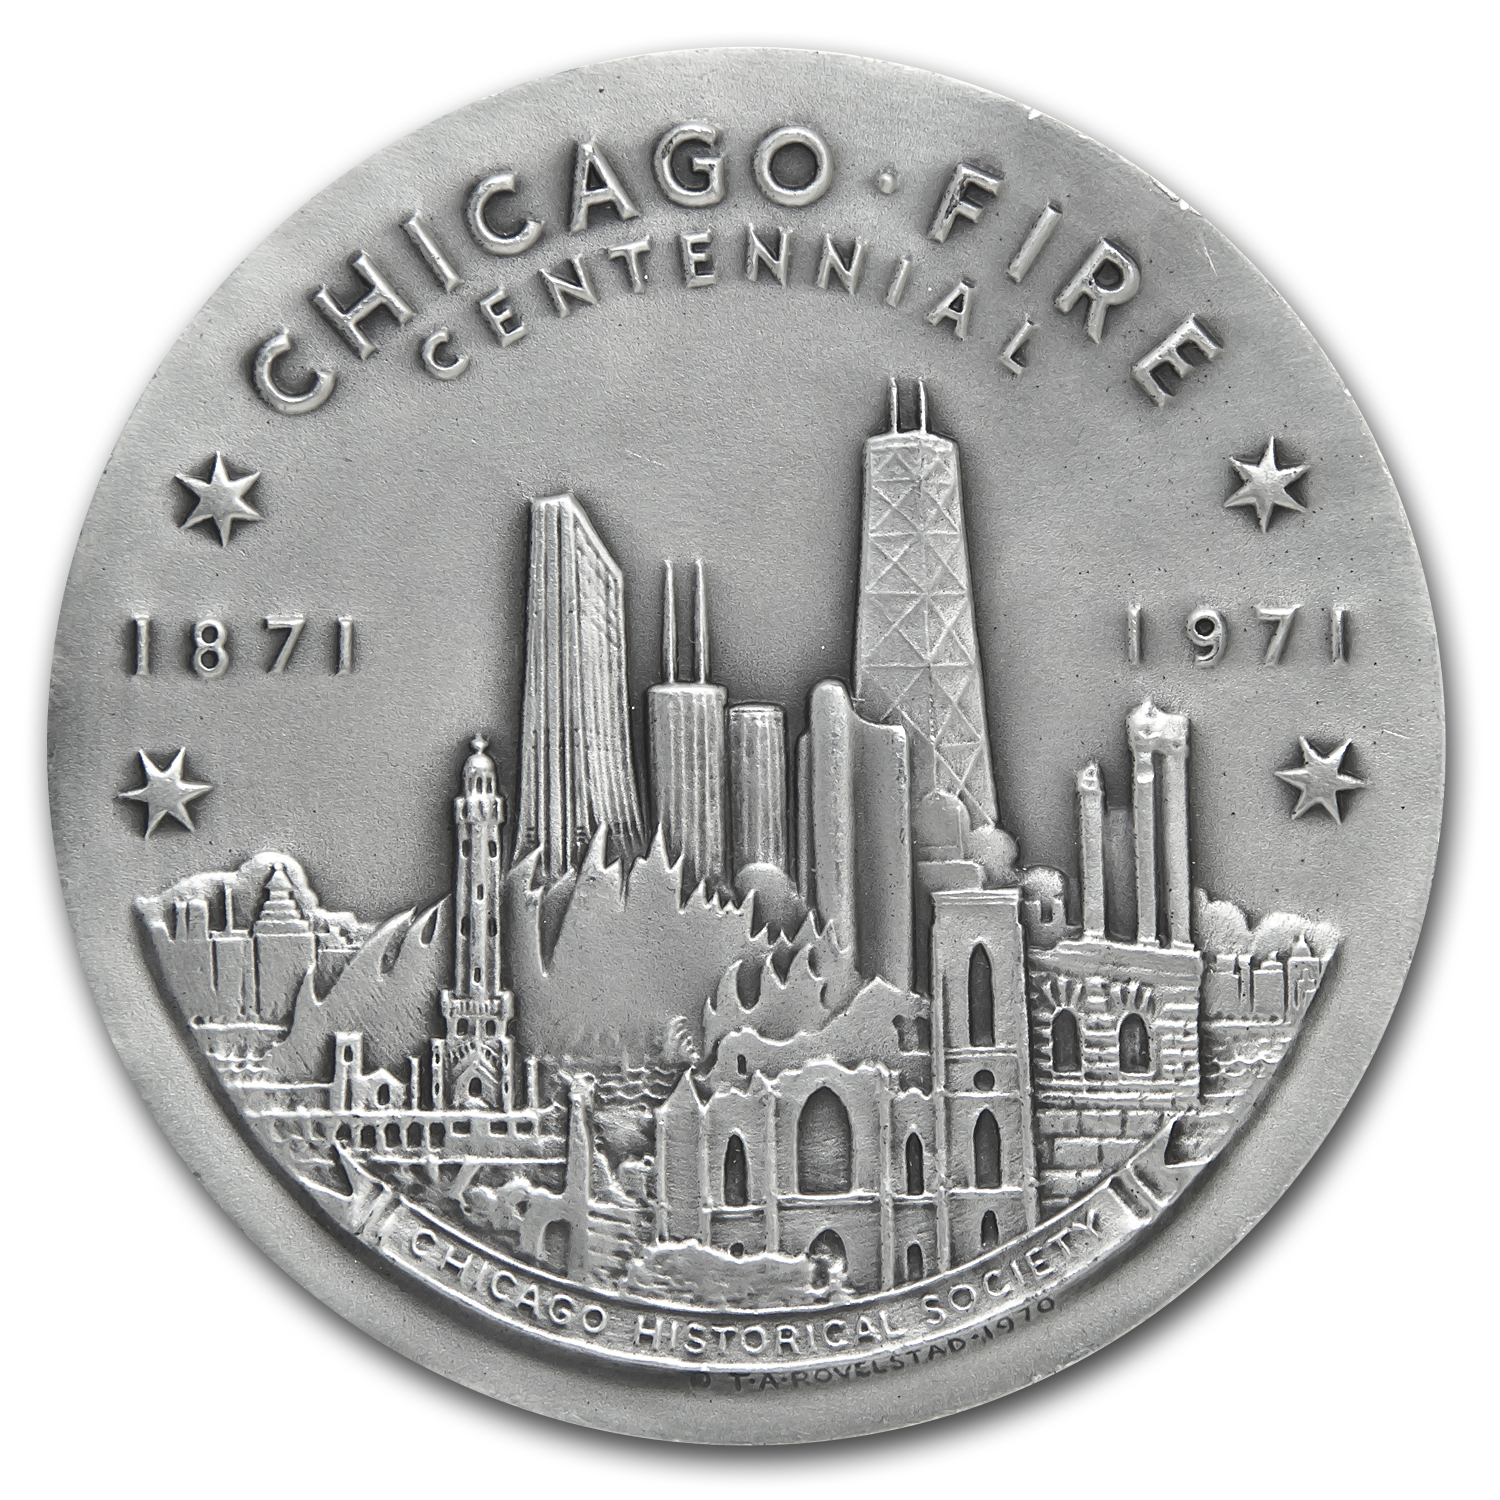 4.33 oz Silver Round - Chicago Fire Centennial